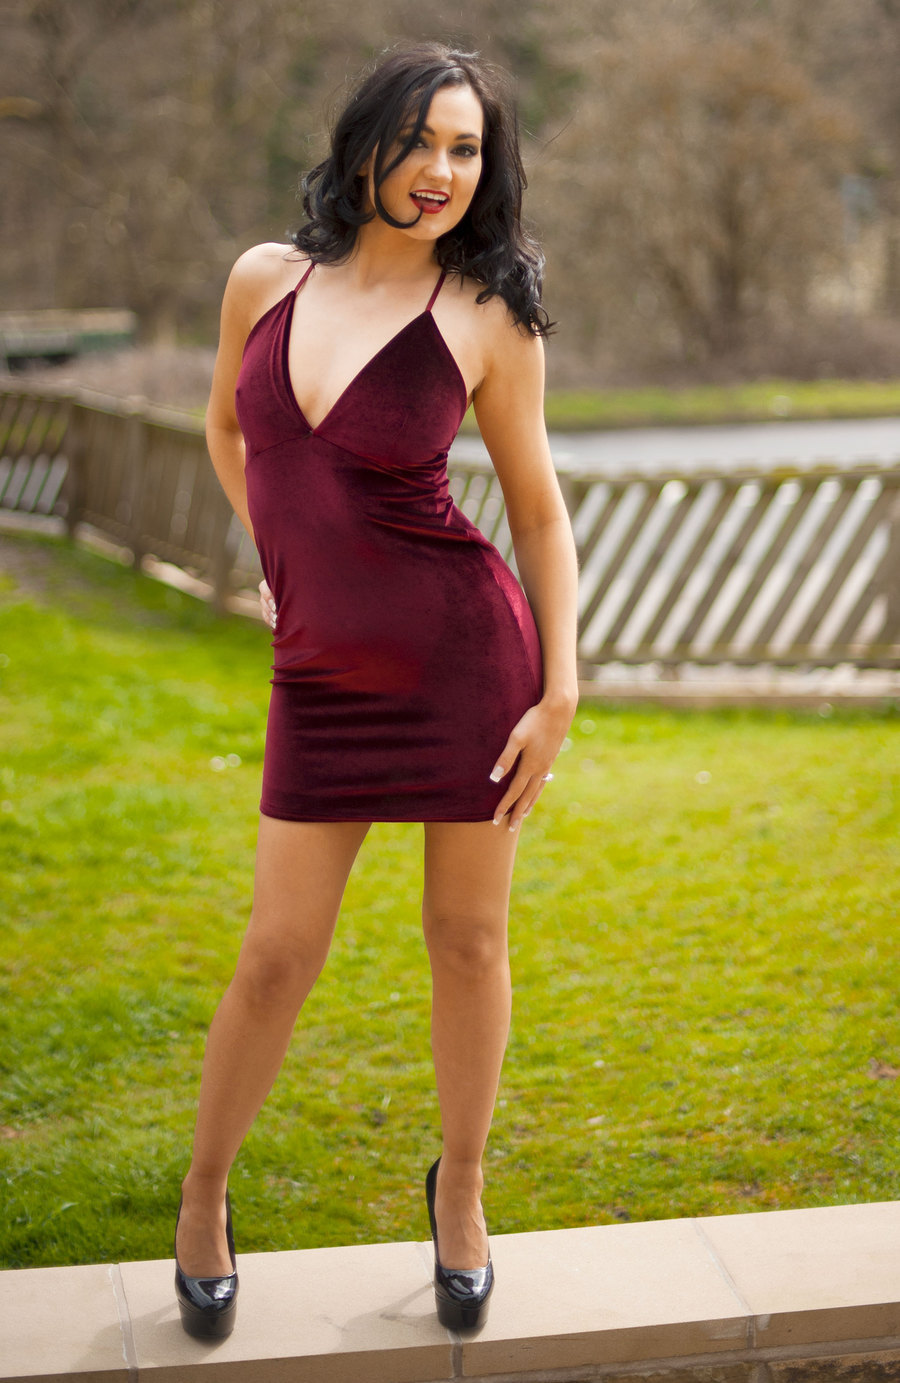 Front Garden Fashion / Photography by Dennis Bloodnok Photography, Model BonnieBellotti, Makeup by BonnieBellotti, Post processing by Dennis Bloodnok Photography / Uploaded 19th June 2015 @ 09:45 PM